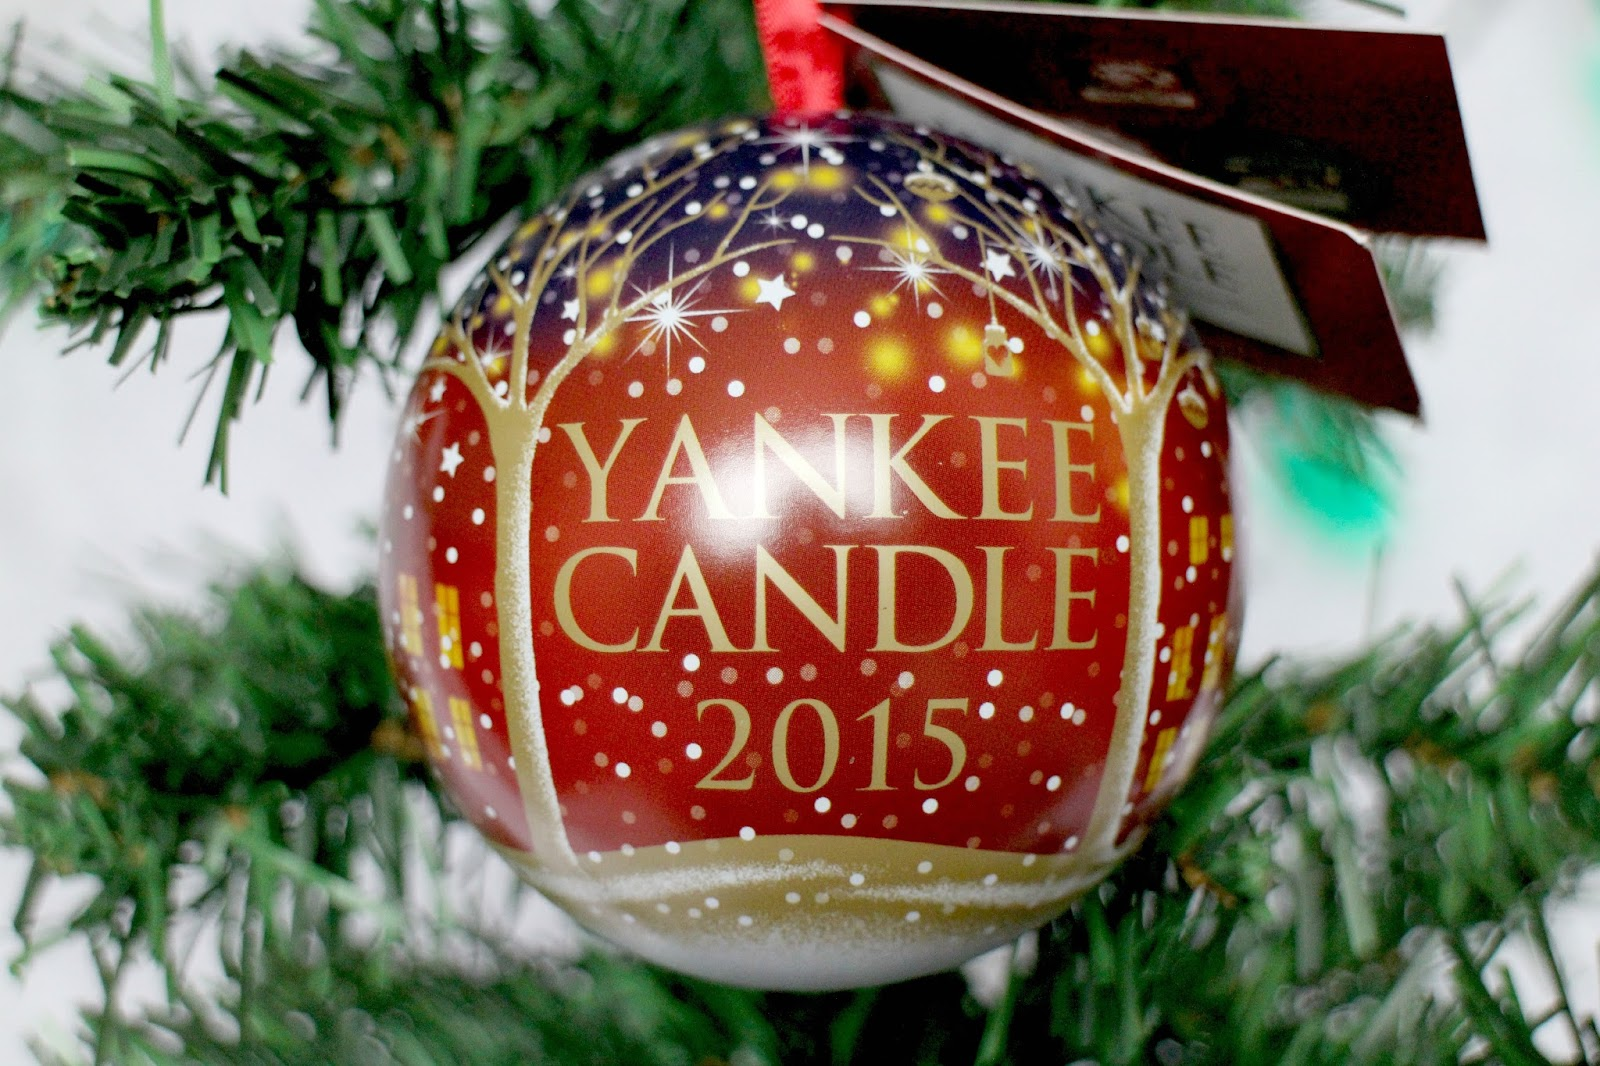 Yankee Candle 2015 Keepsake Bauble